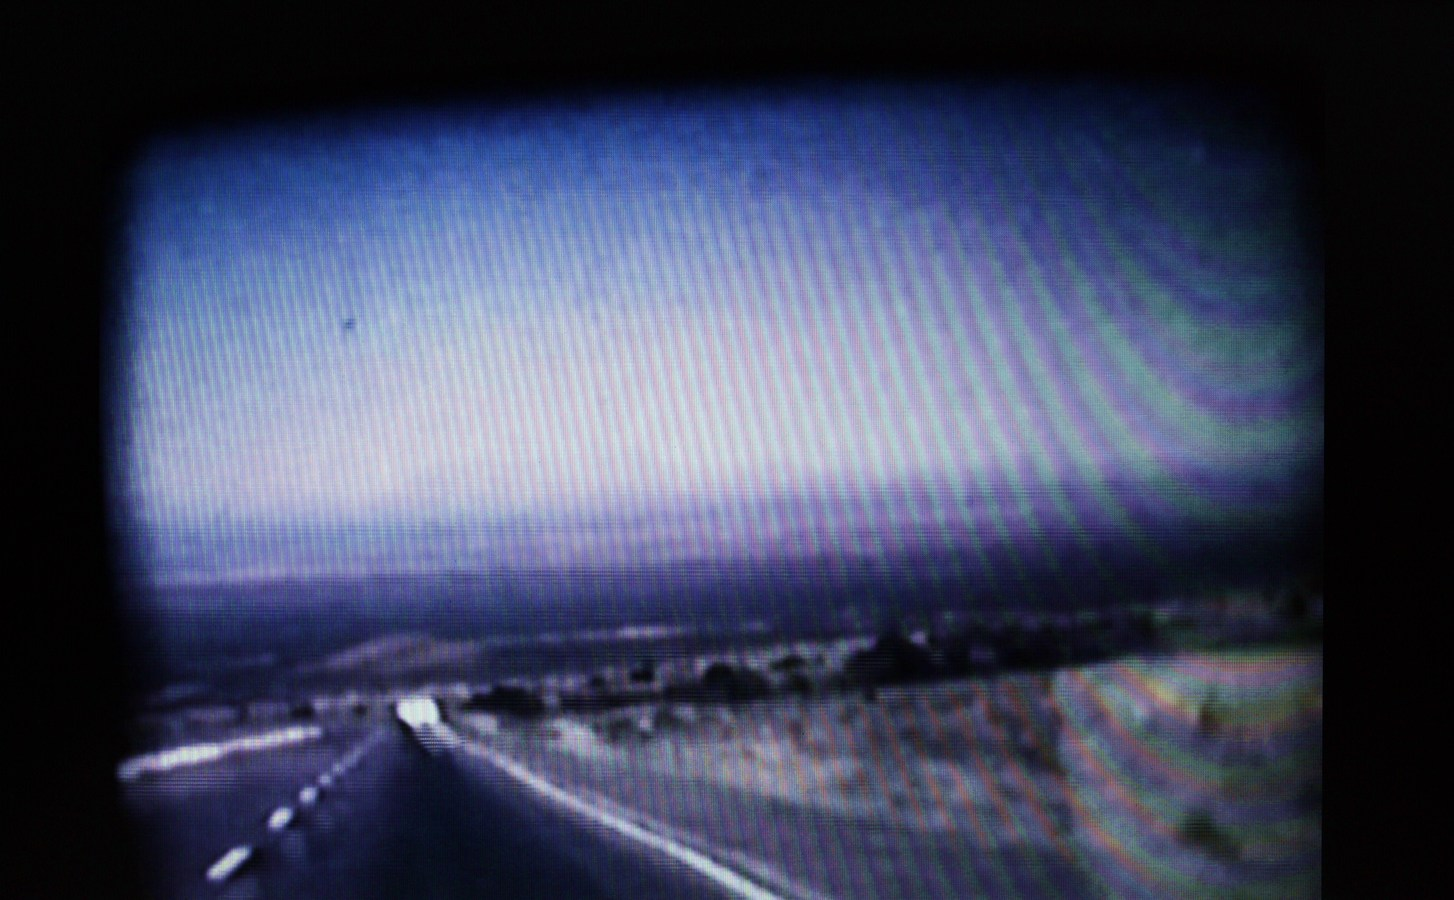 Welcome To My Myth, Part II Still from Family Landscape (Video), Scene from I-10